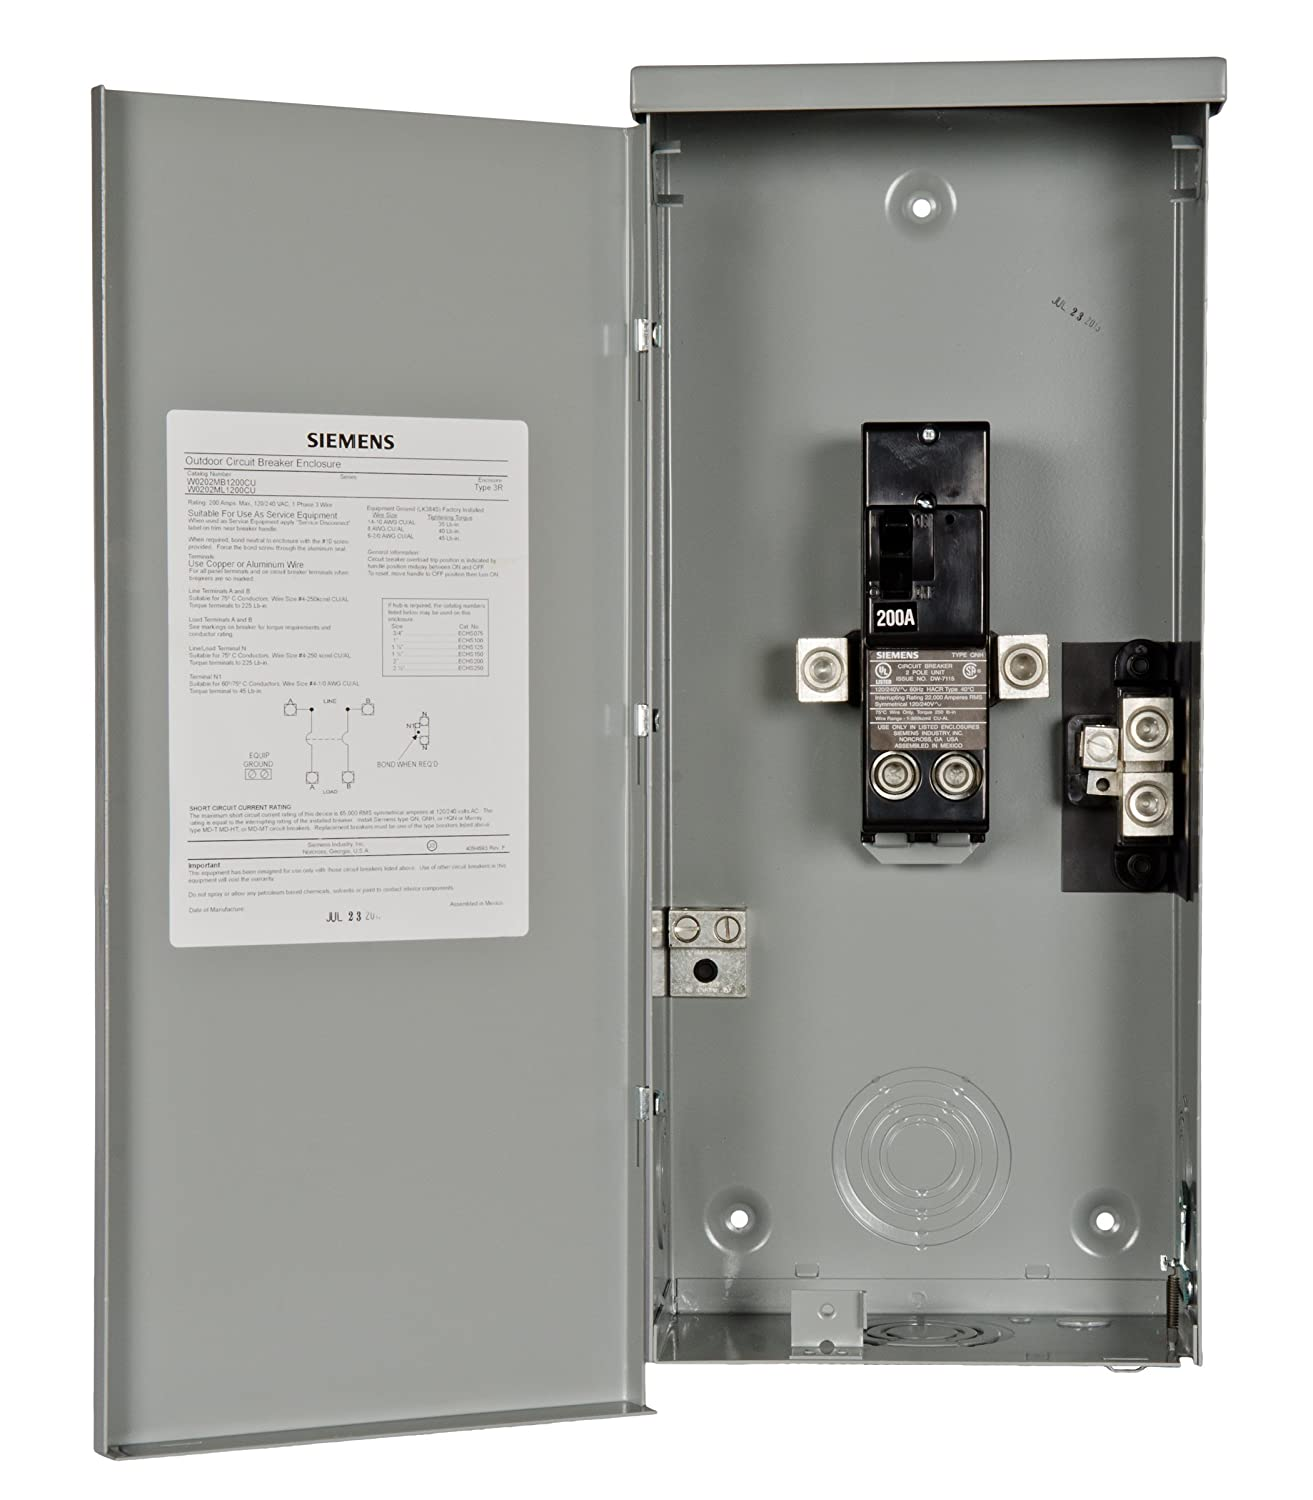 816eFn3lLeL._SL1500_ siemens w0204ml1060u 60 amp outdoor circuit breaker enclosure Siemens 540 100 Wiring Diagrams at gsmx.co